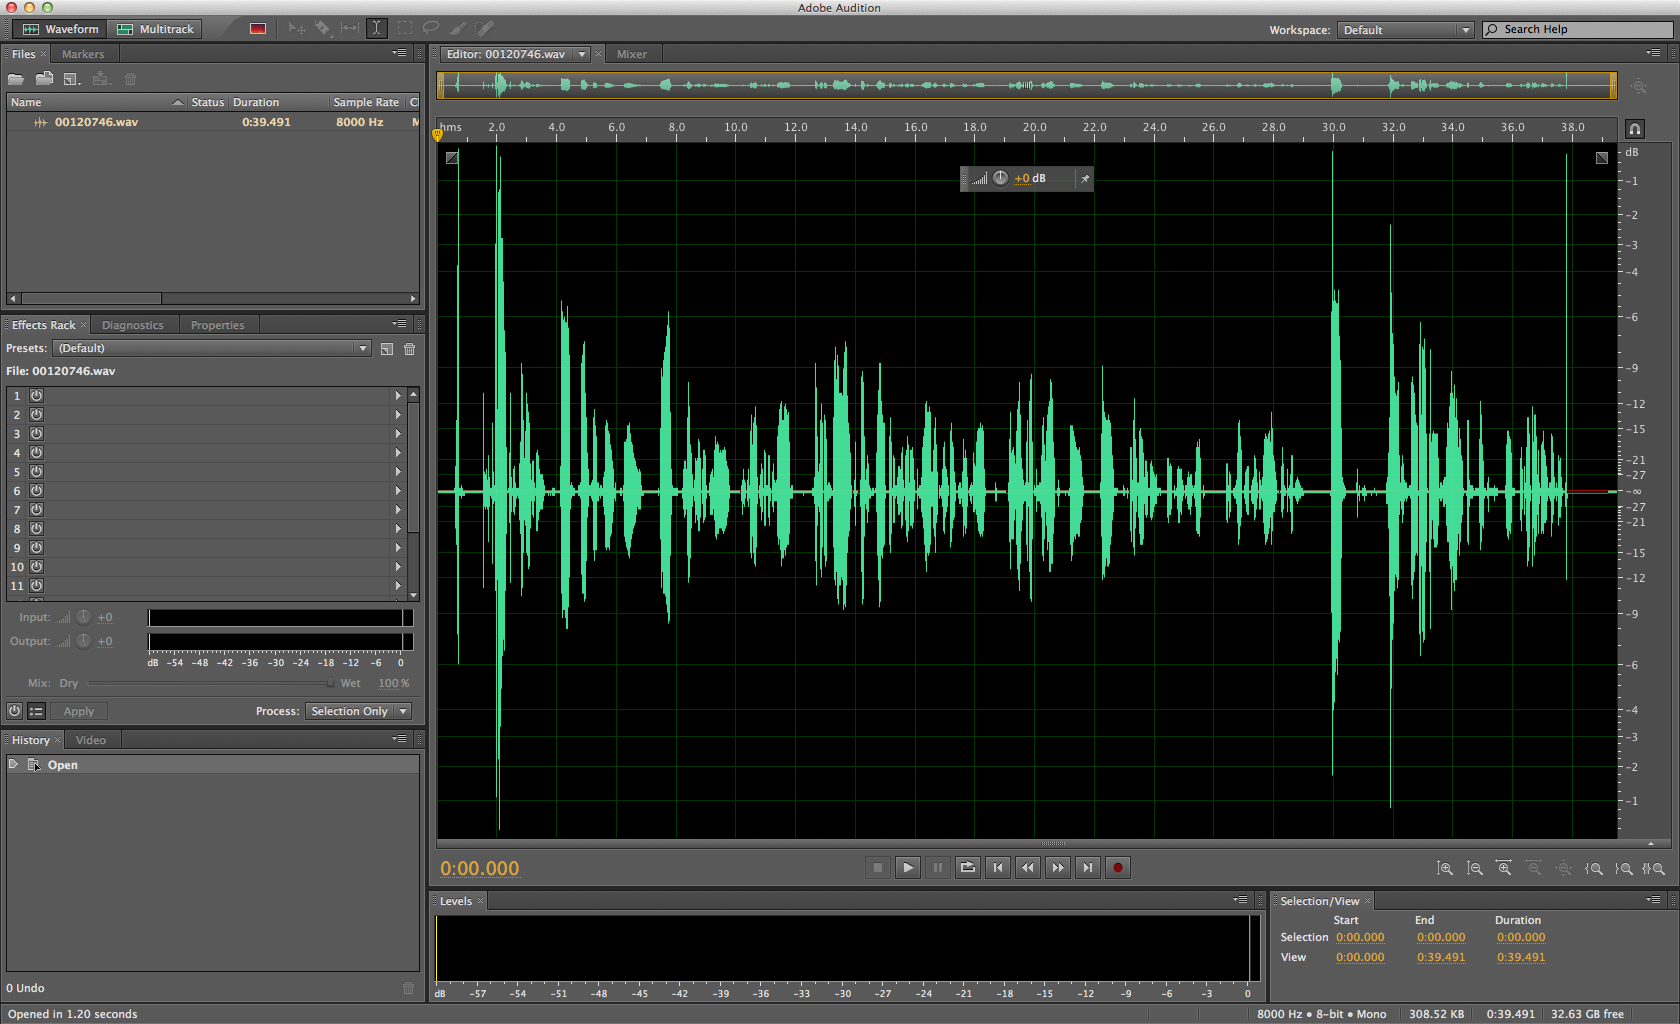 Adobe Audition Audio Editor free